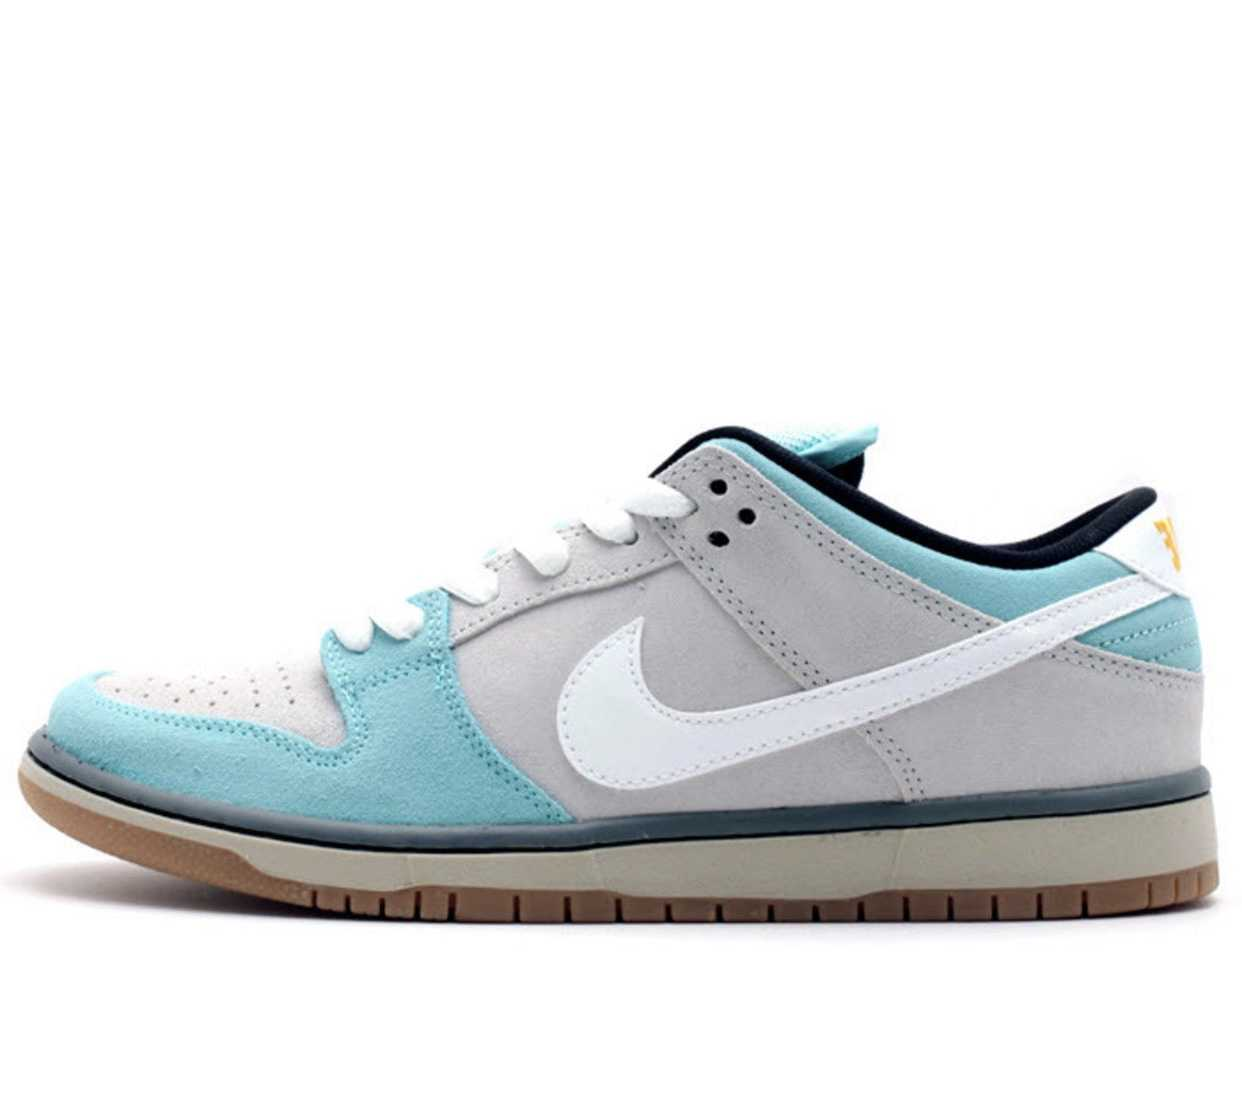 """DUNK LOW SB """"GULF OF MEXICO"""" GLACIER ICE/WHITE-LIGHT ASH GRY"""